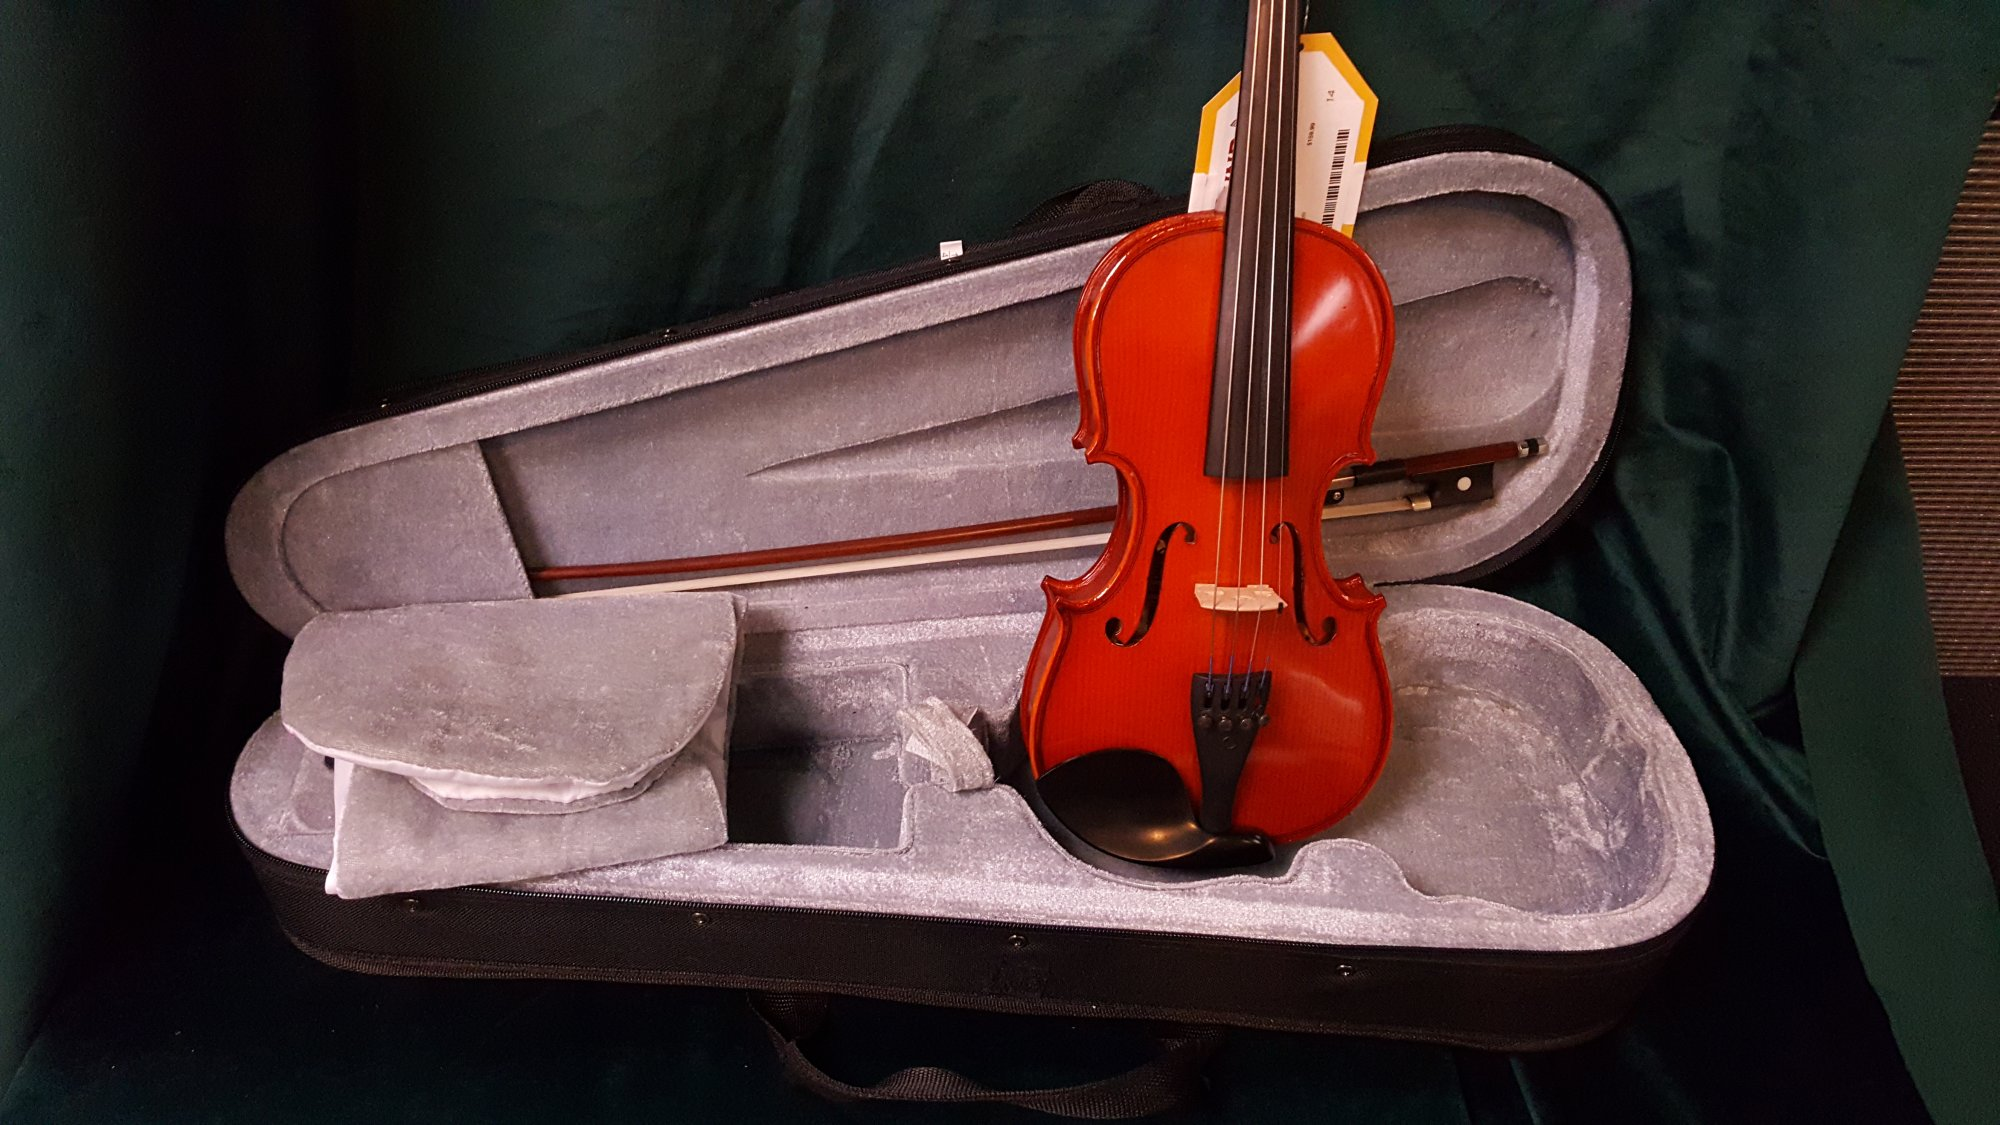 Used Sound of Music Symphony I 1/4 Size Violin Outfit